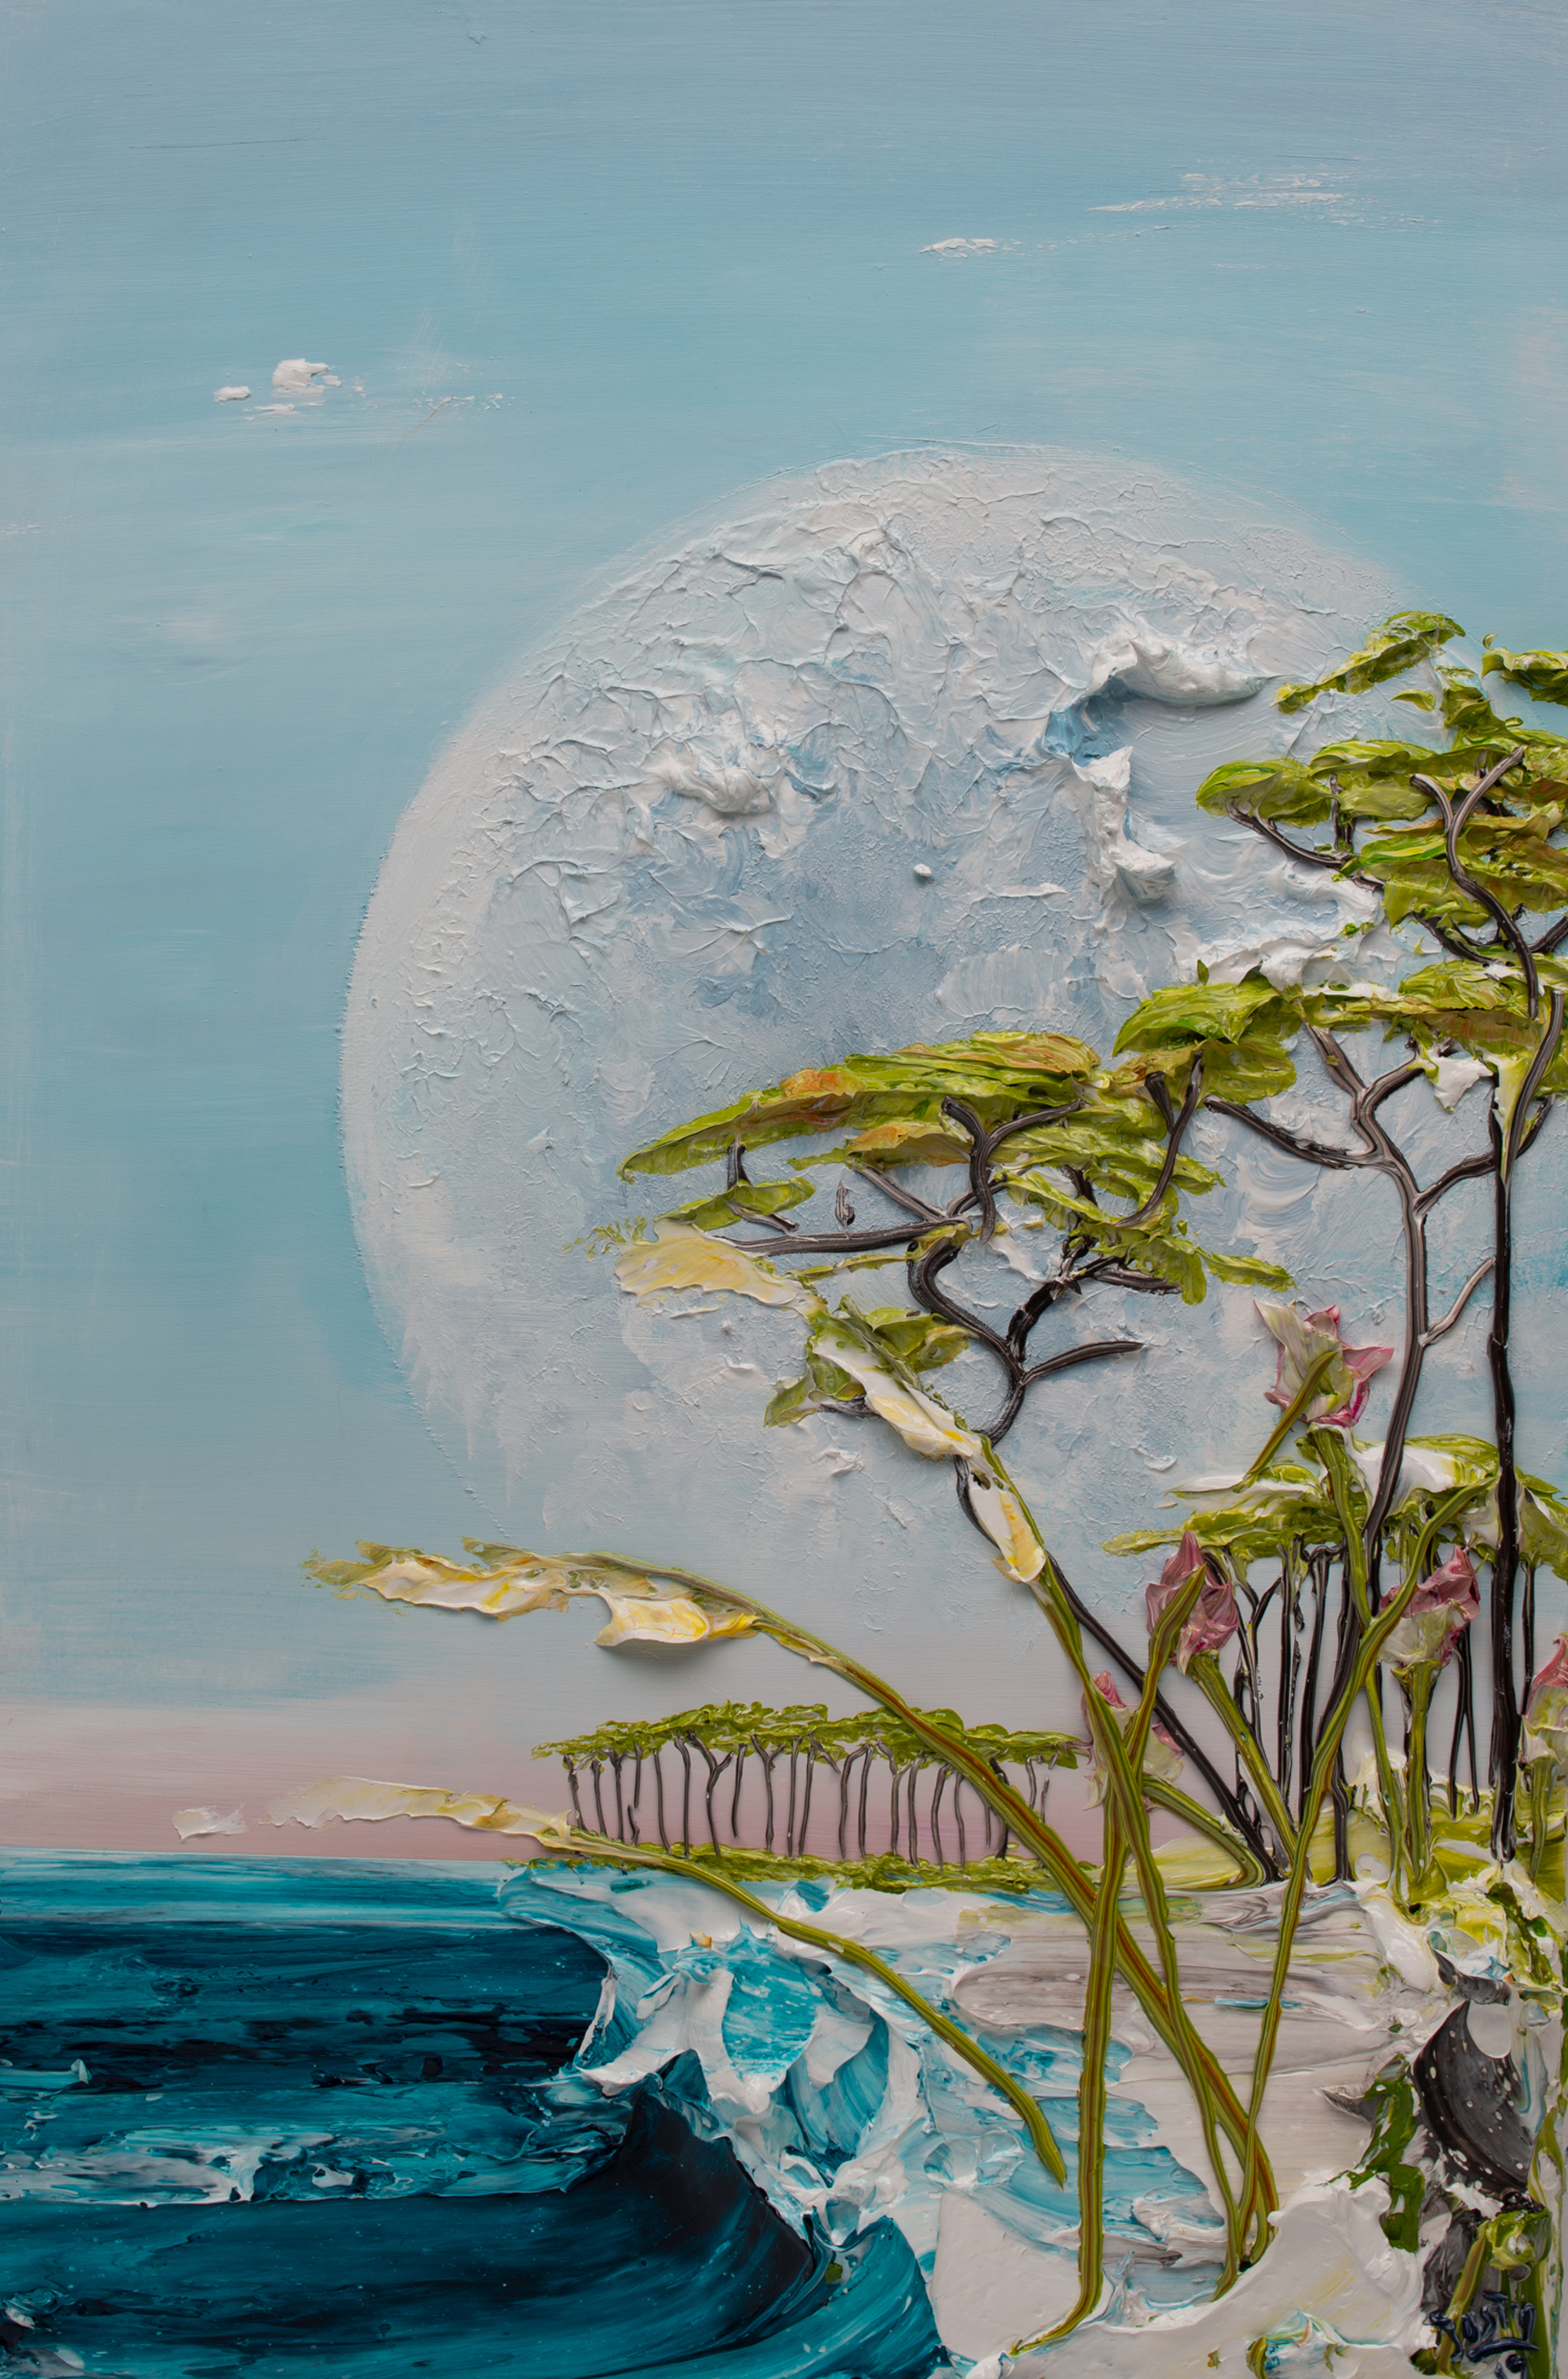 MOONSCAPE -MS-24X36-2019-239 by JUSTIN GAFFREY